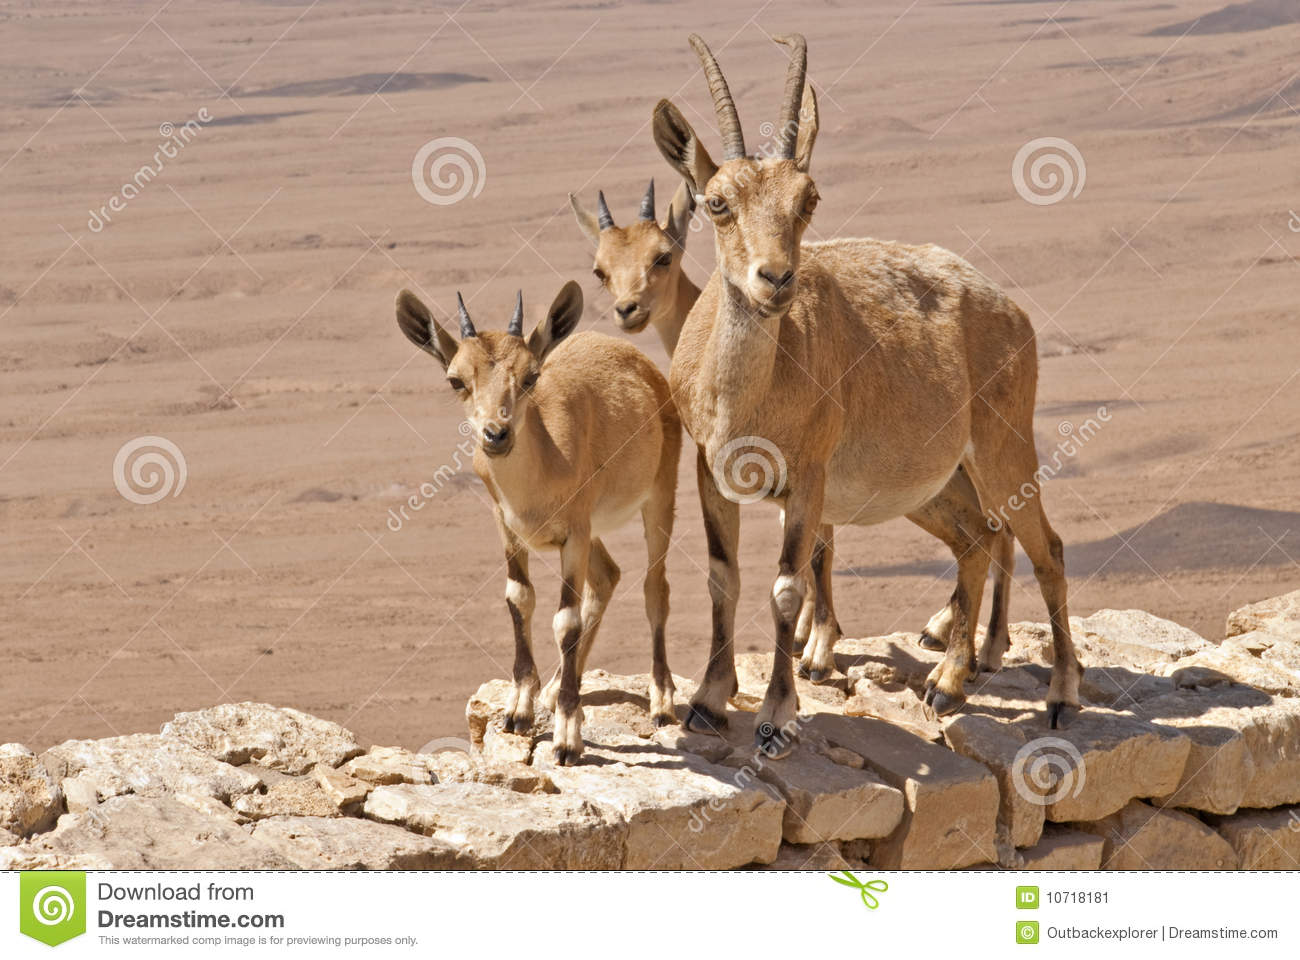 Three curious mountain goats in the desert